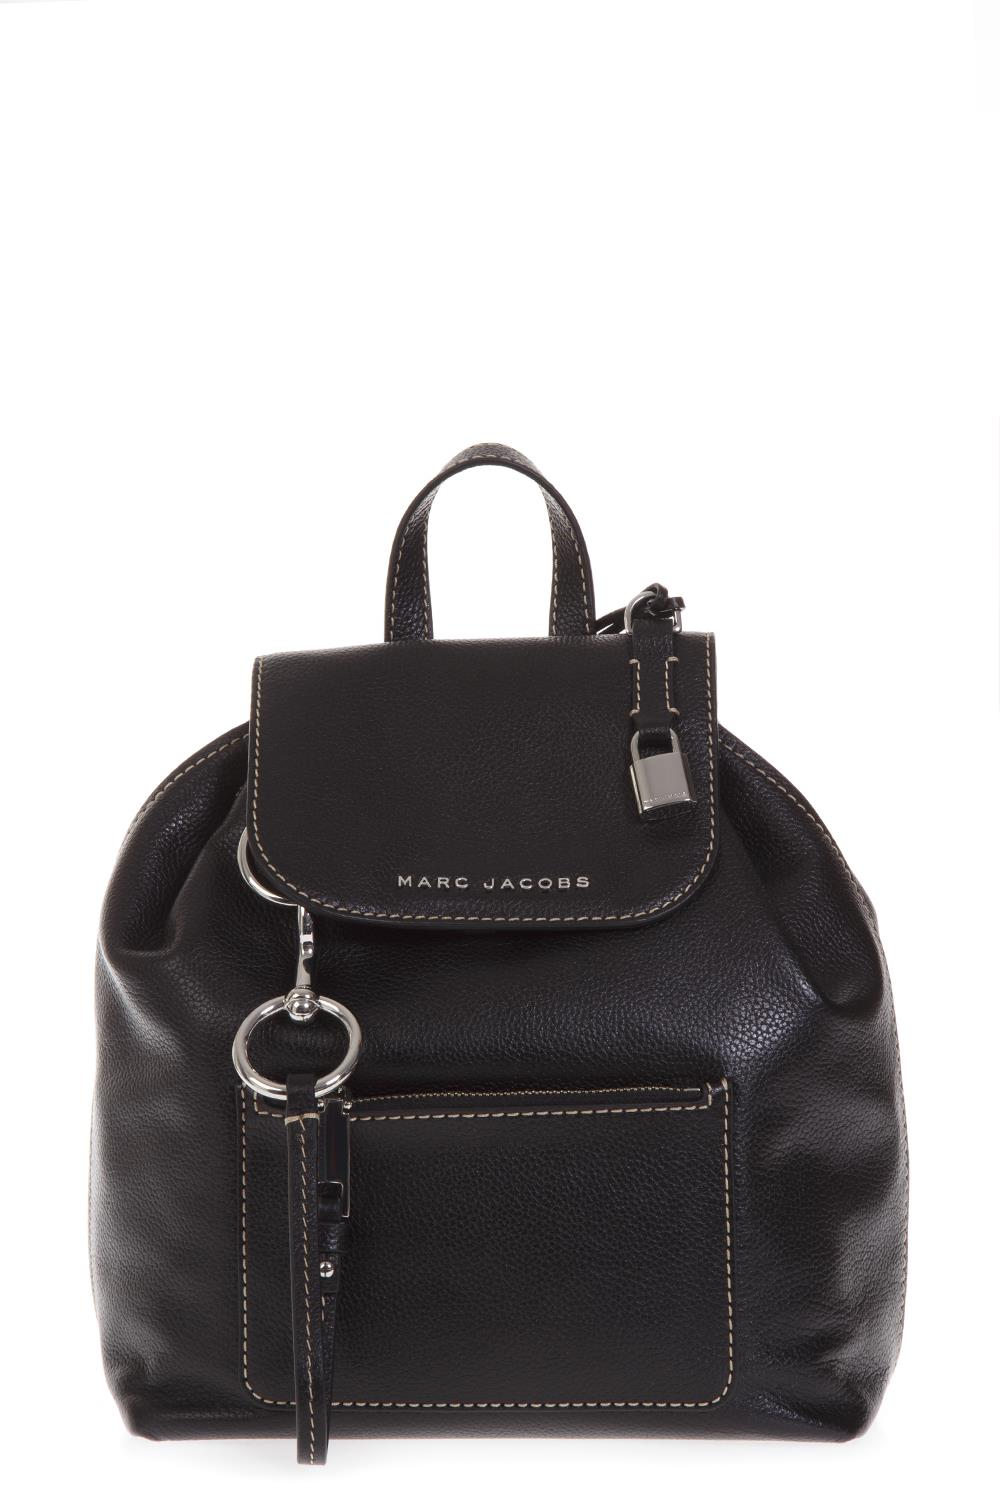 31e990aebd BLACK LEATHER BACKPACK FW 2018 - MARC JACOBS - Boutique Galiano